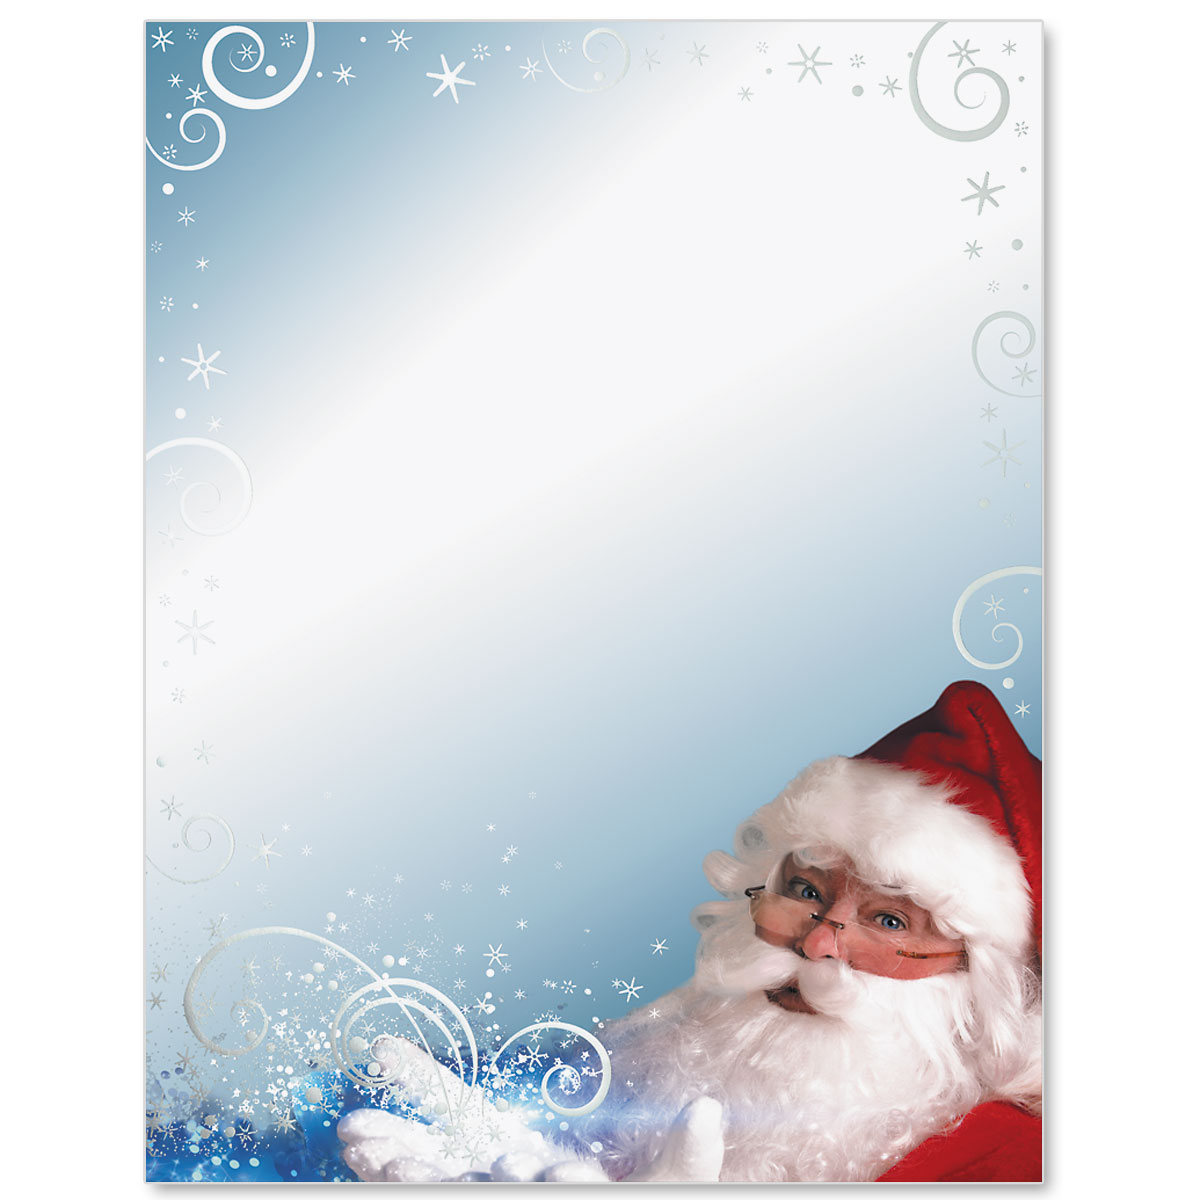 Santas magic specialty border papers paperdirects santas magic specialty border papers m4hsunfo Images